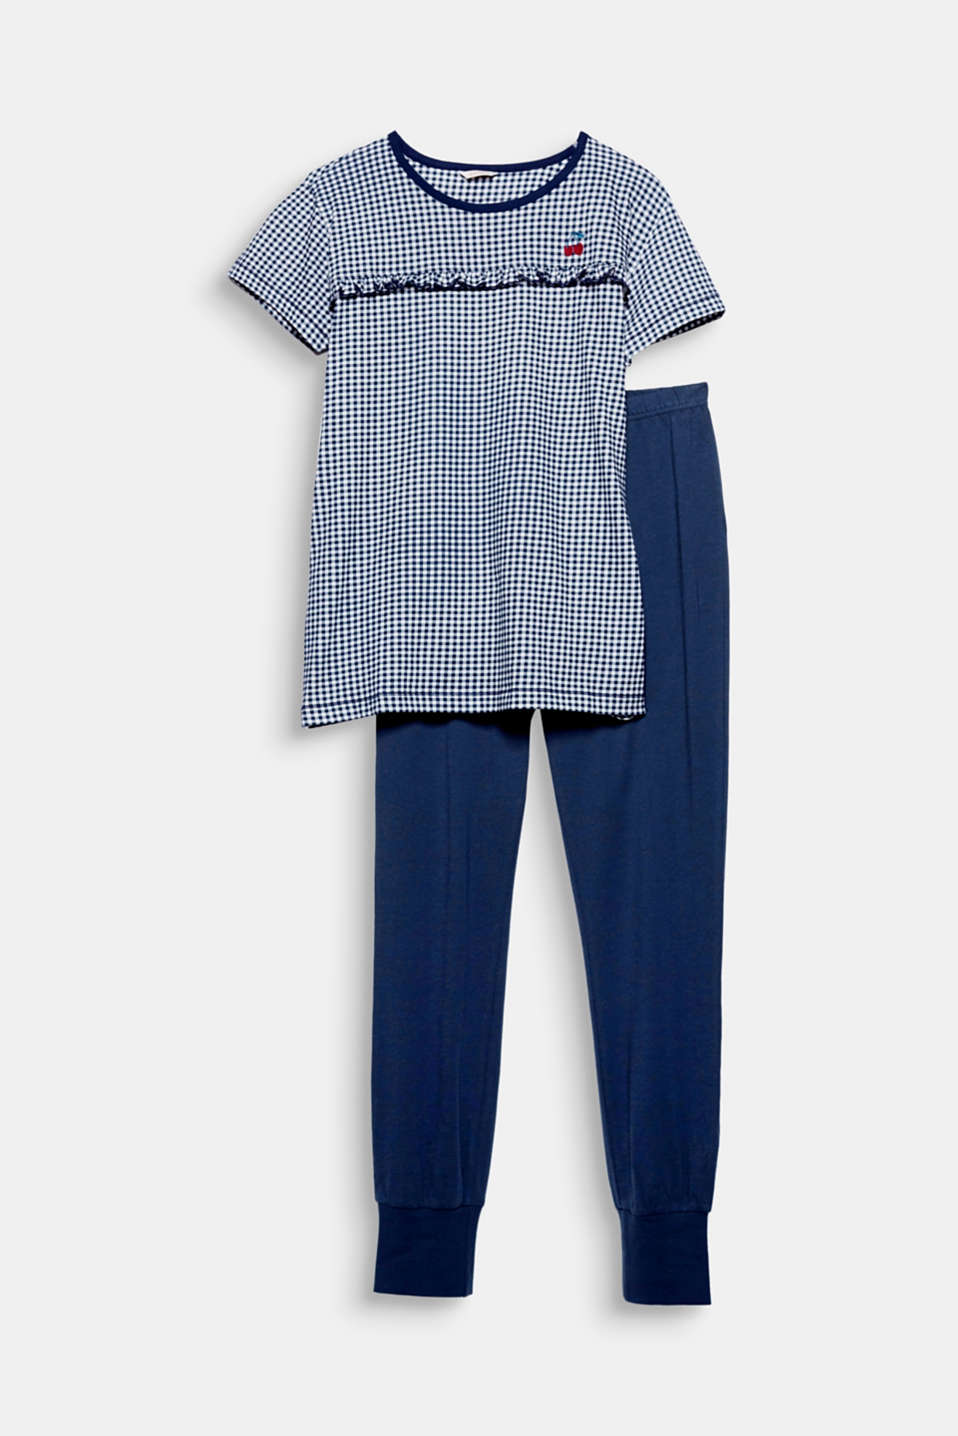 The pretty gingham checks, the cherry embroidery and the appliquéd frill add decorative, eye-catching details to these jersey pyjamas!